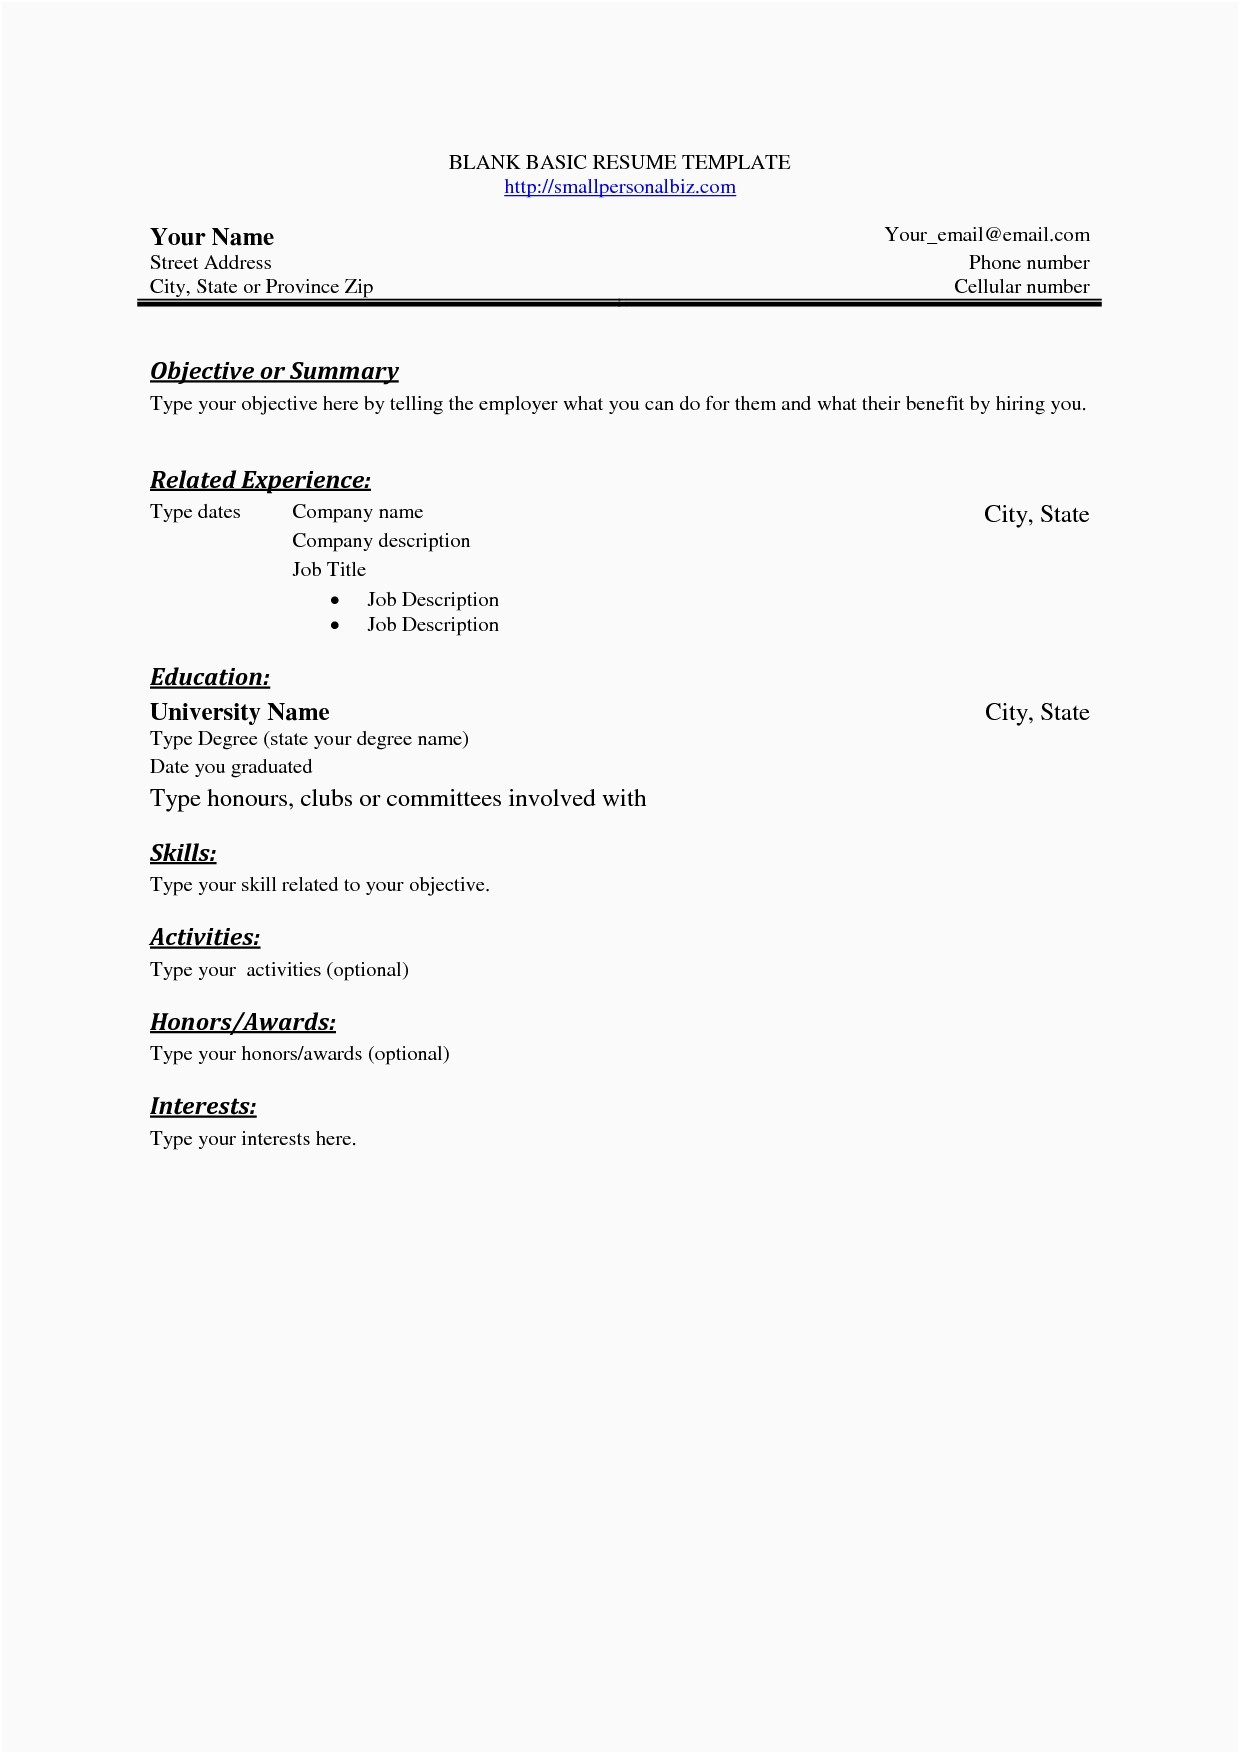 Letter Of Introduction Template for Employment - Letter Introduction Template